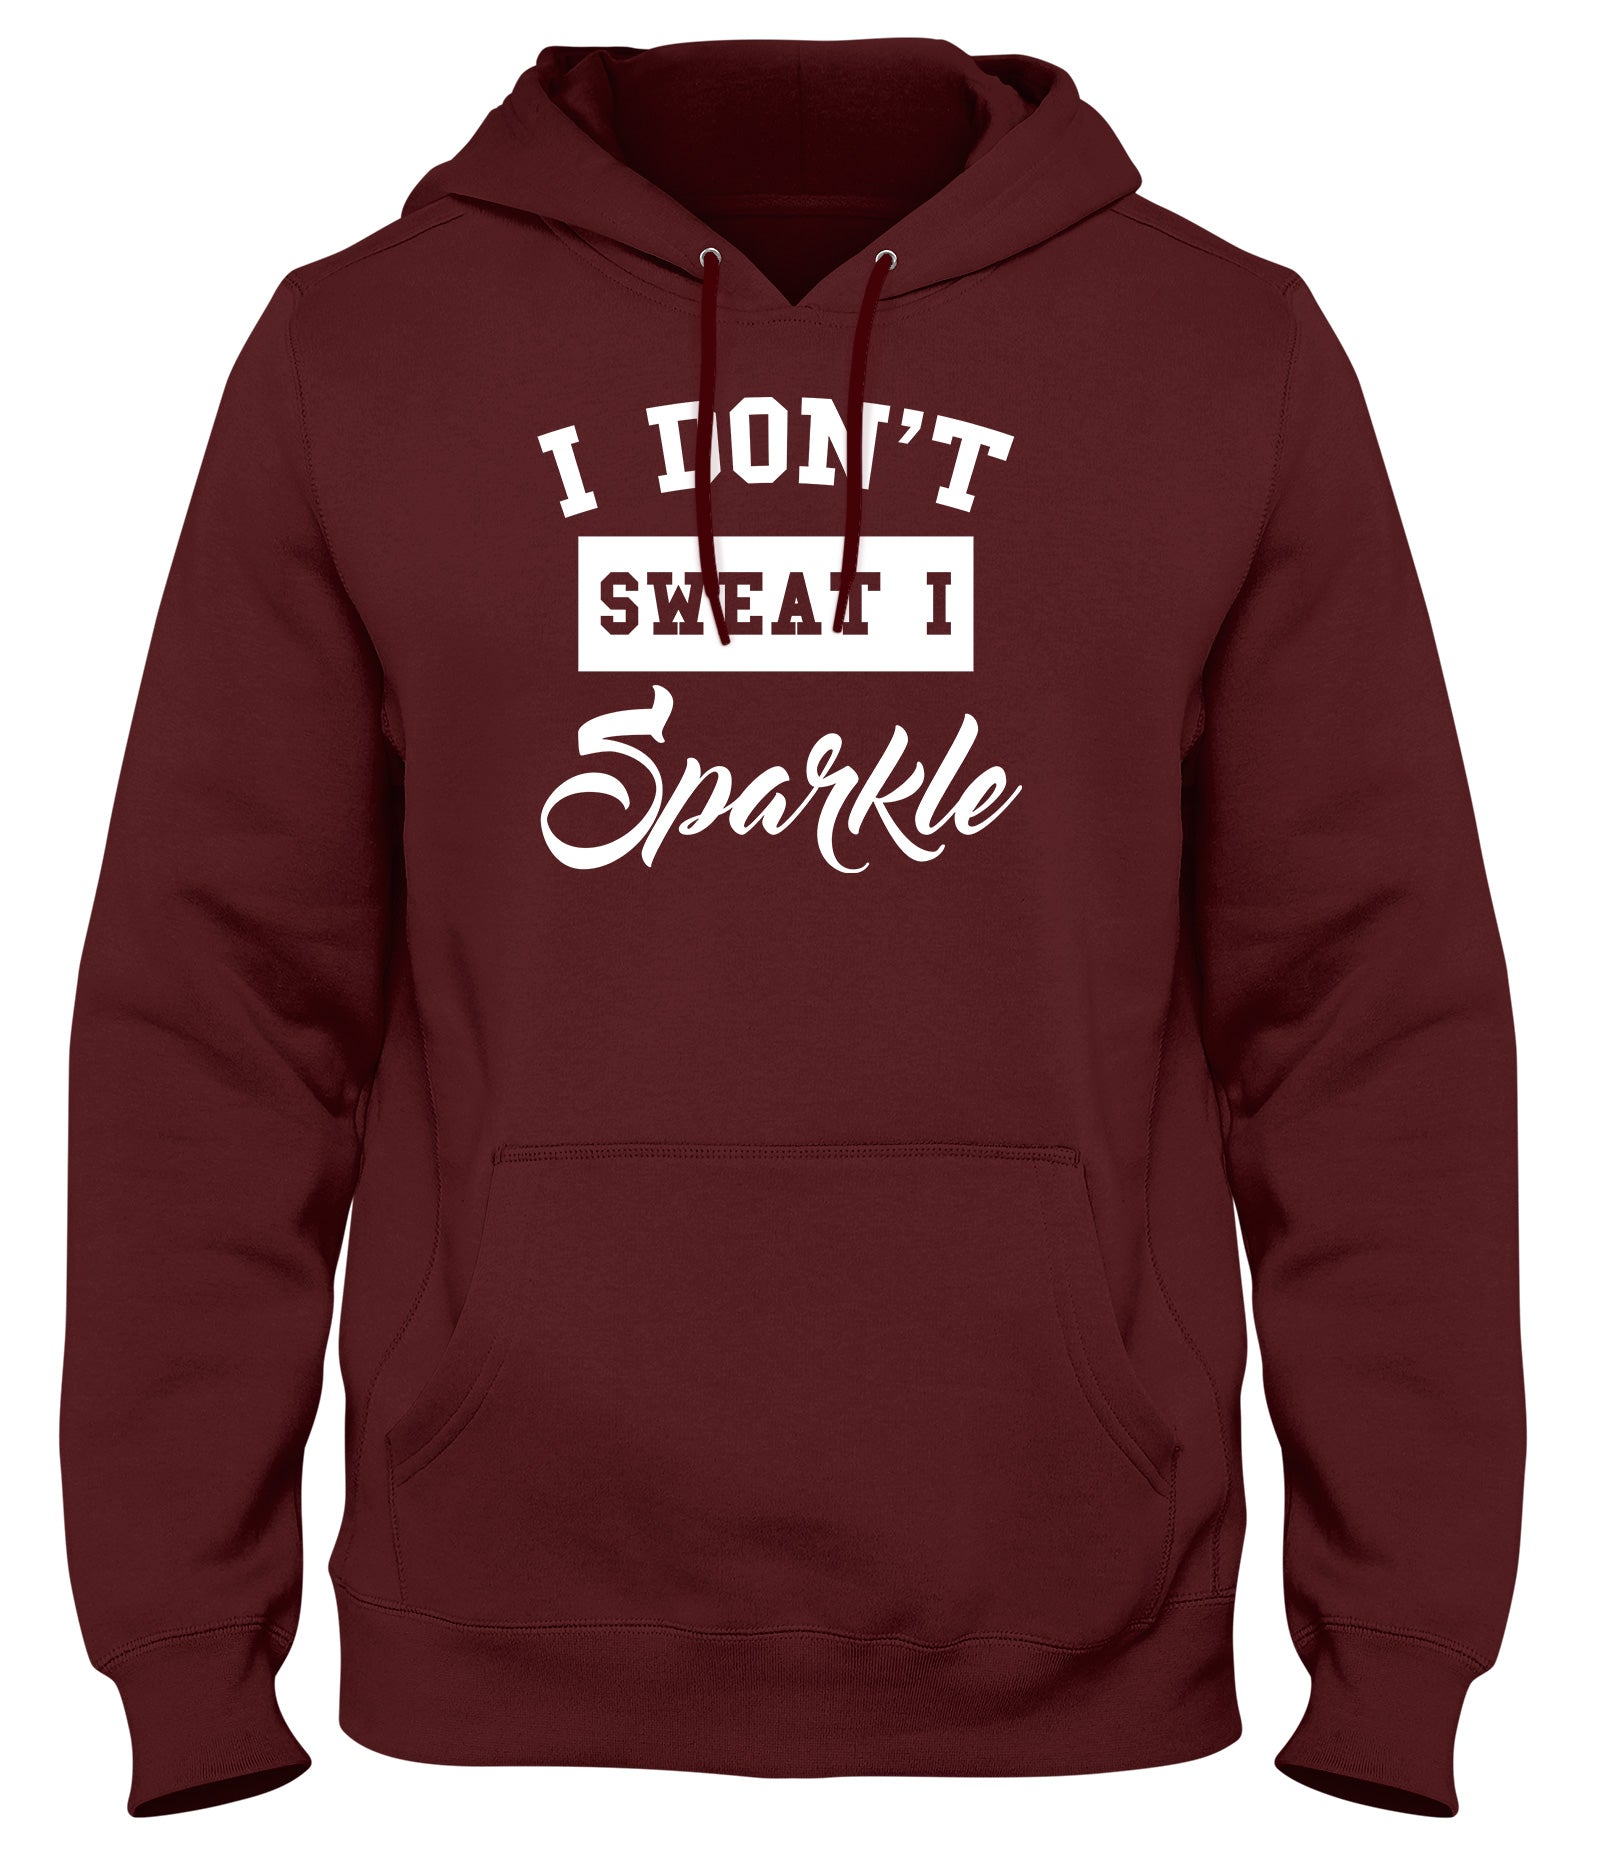 I DON'T SWEAT I SPARKLE MENS LADIES WOMENS UNISEX HOODIE